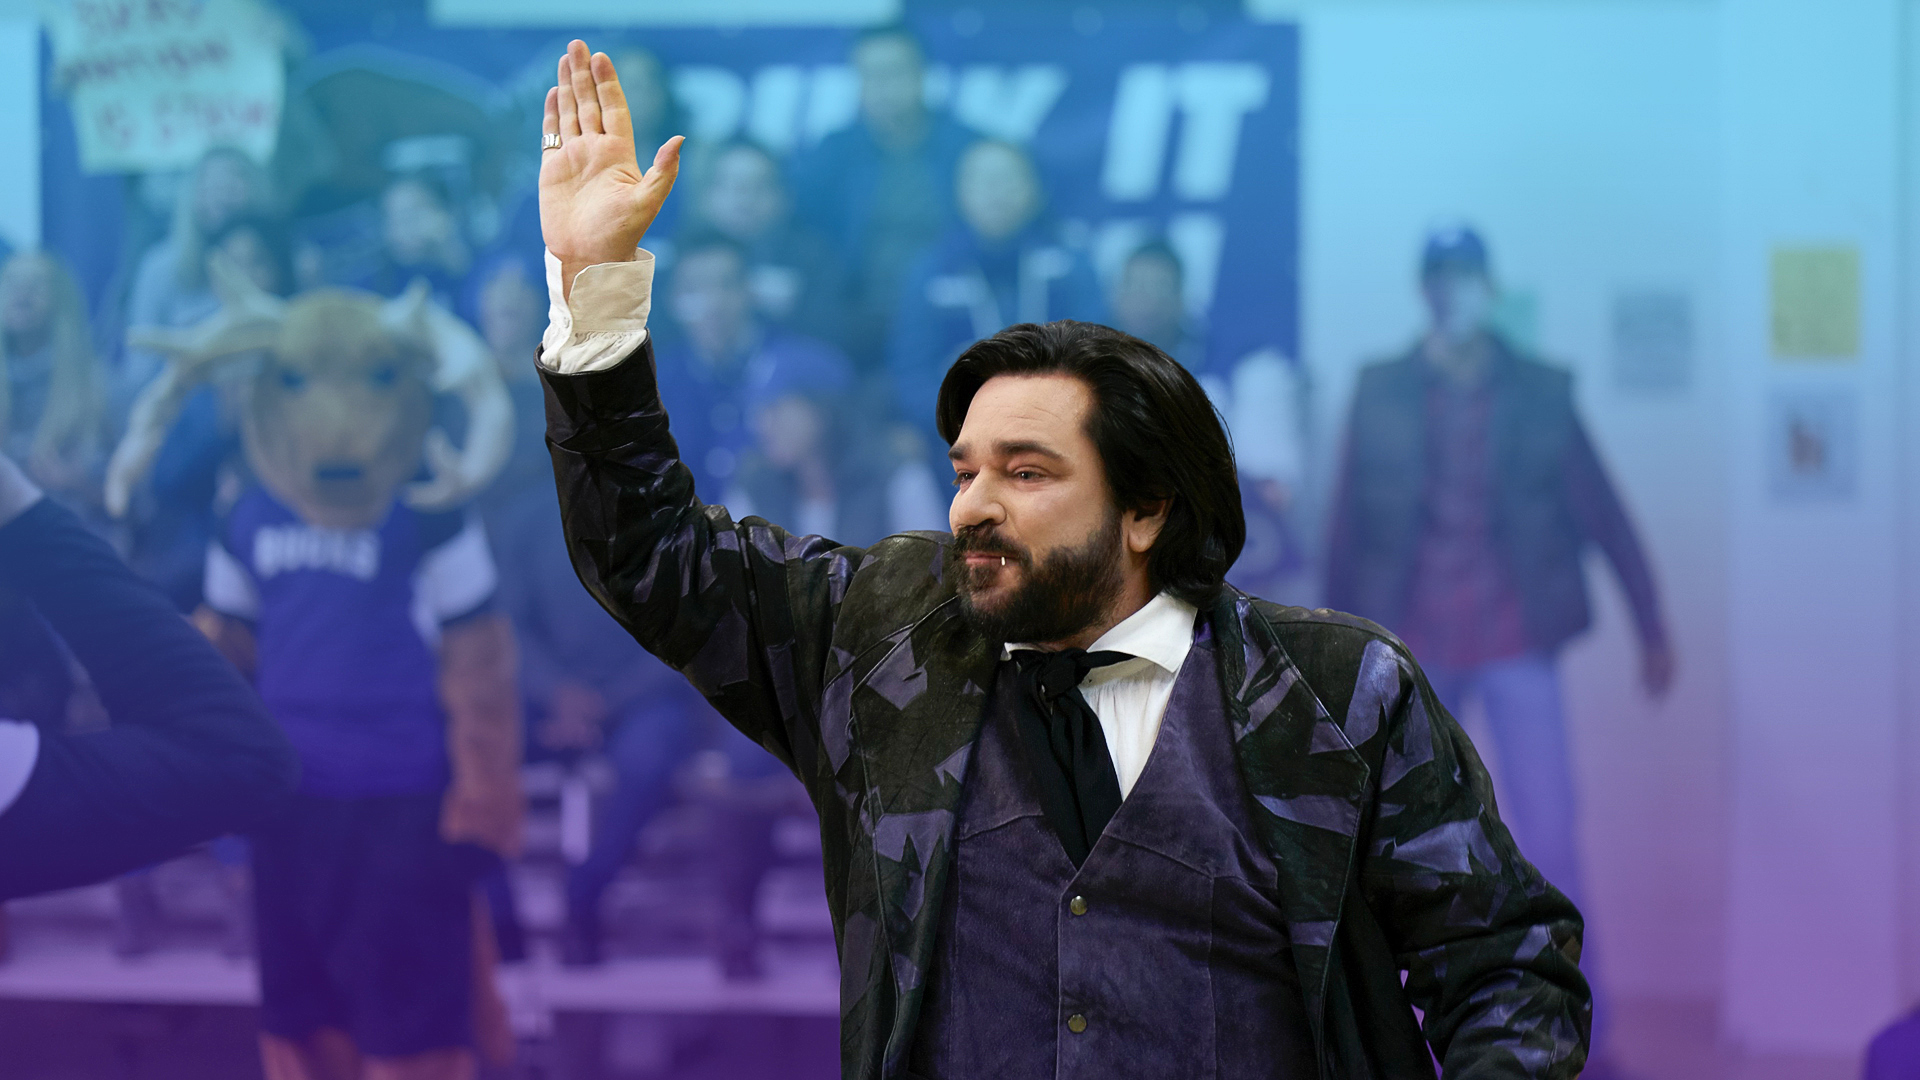 """A scene from """"What We Do in the Shadows"""" TV show: A modern day vampire from the raises his hand to a sports crowd"""